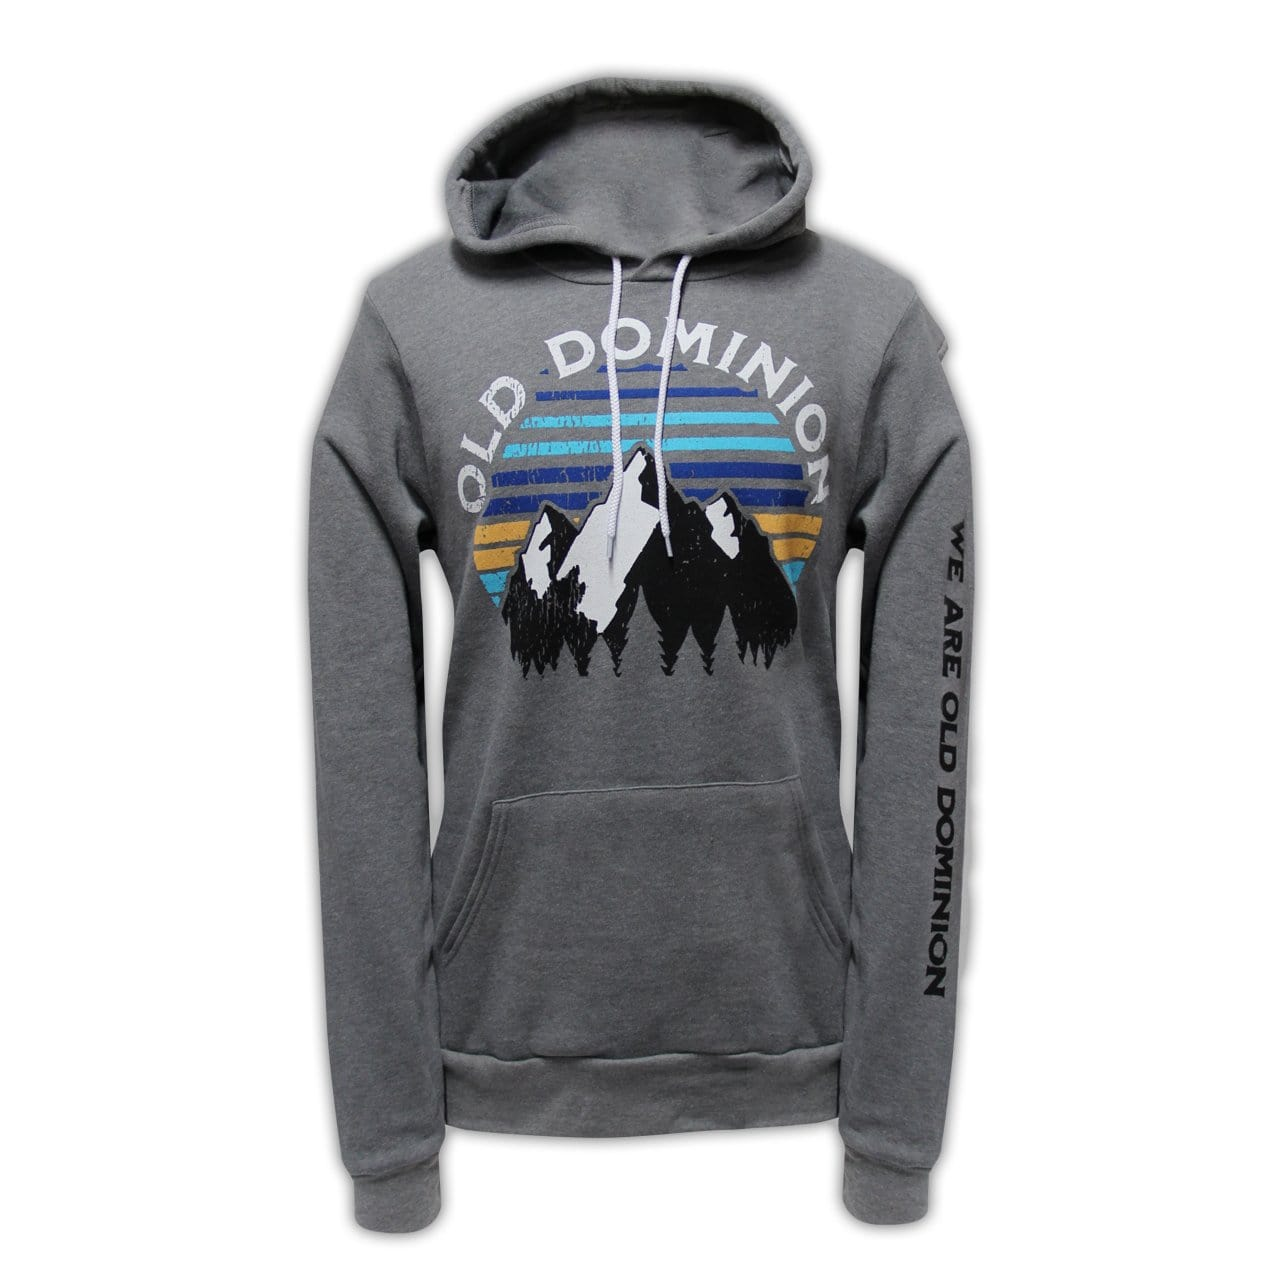 Old Dominion 2019 Make It Sweet World Tour Hoodie